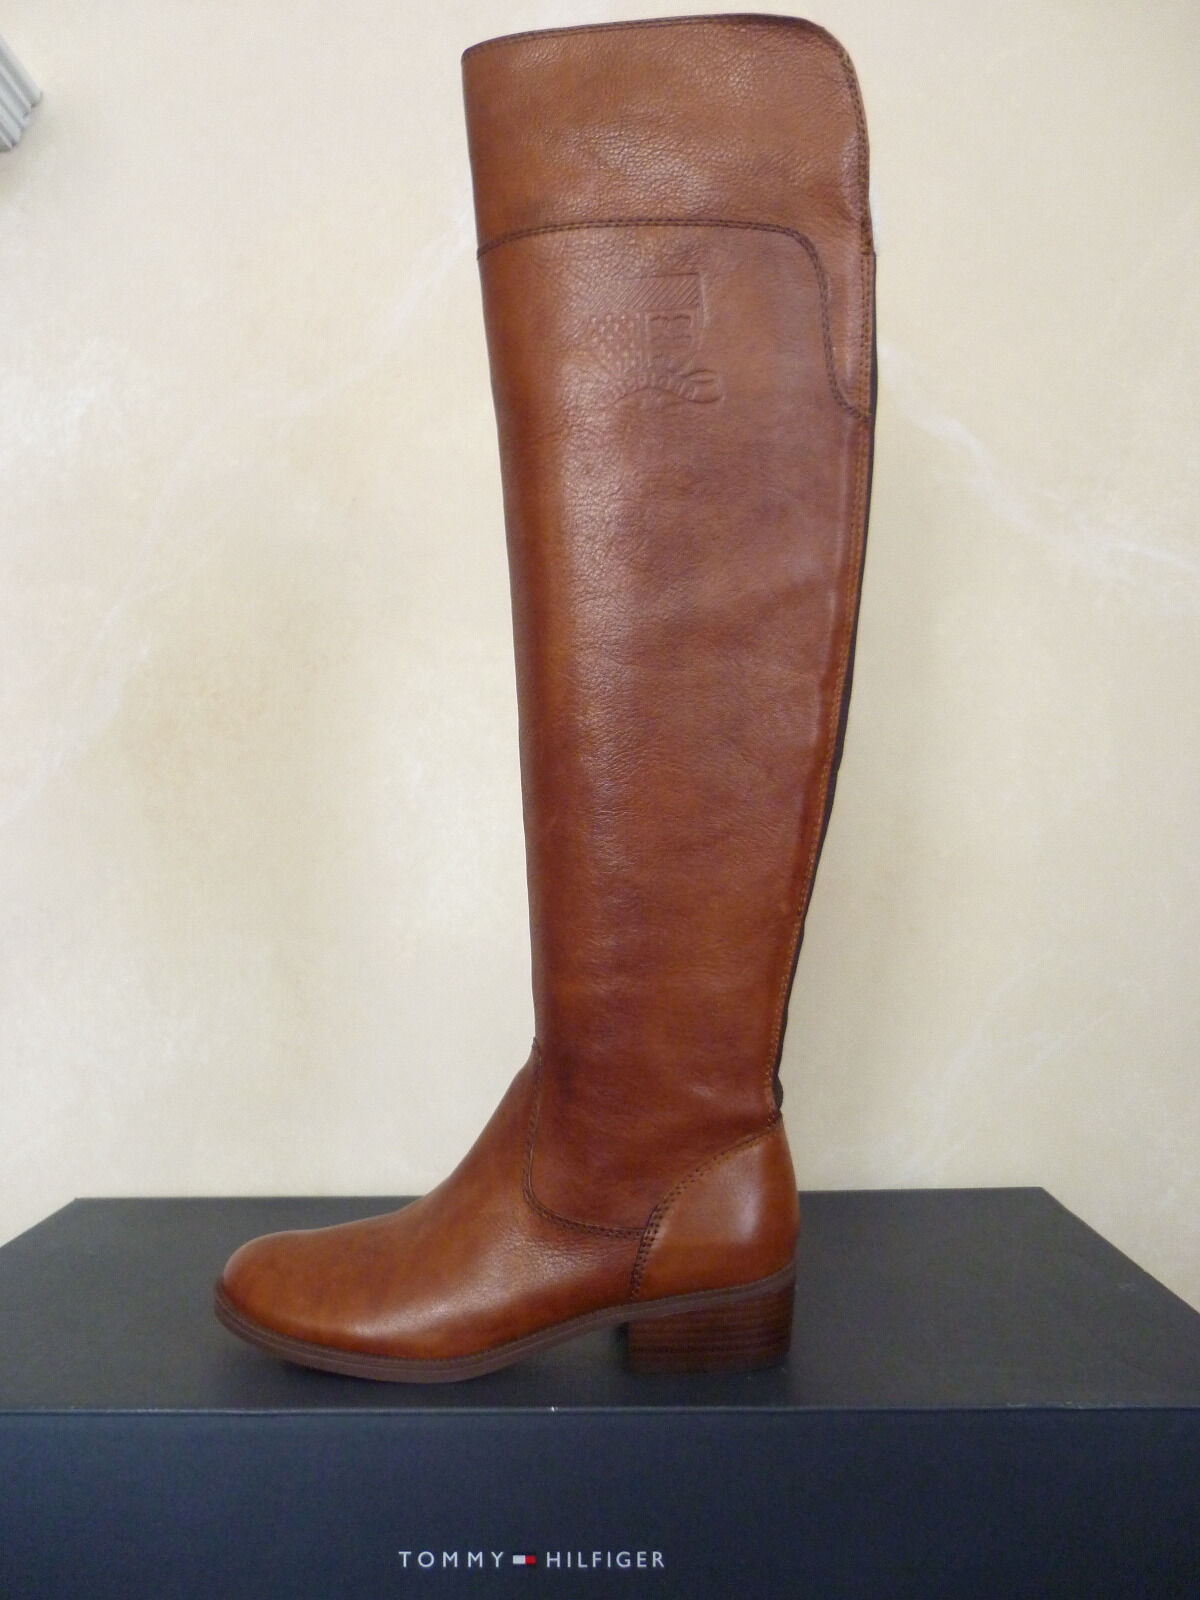 Tommy Hilfiger Giorgia Tall Brown Leather Boot Size 6 M